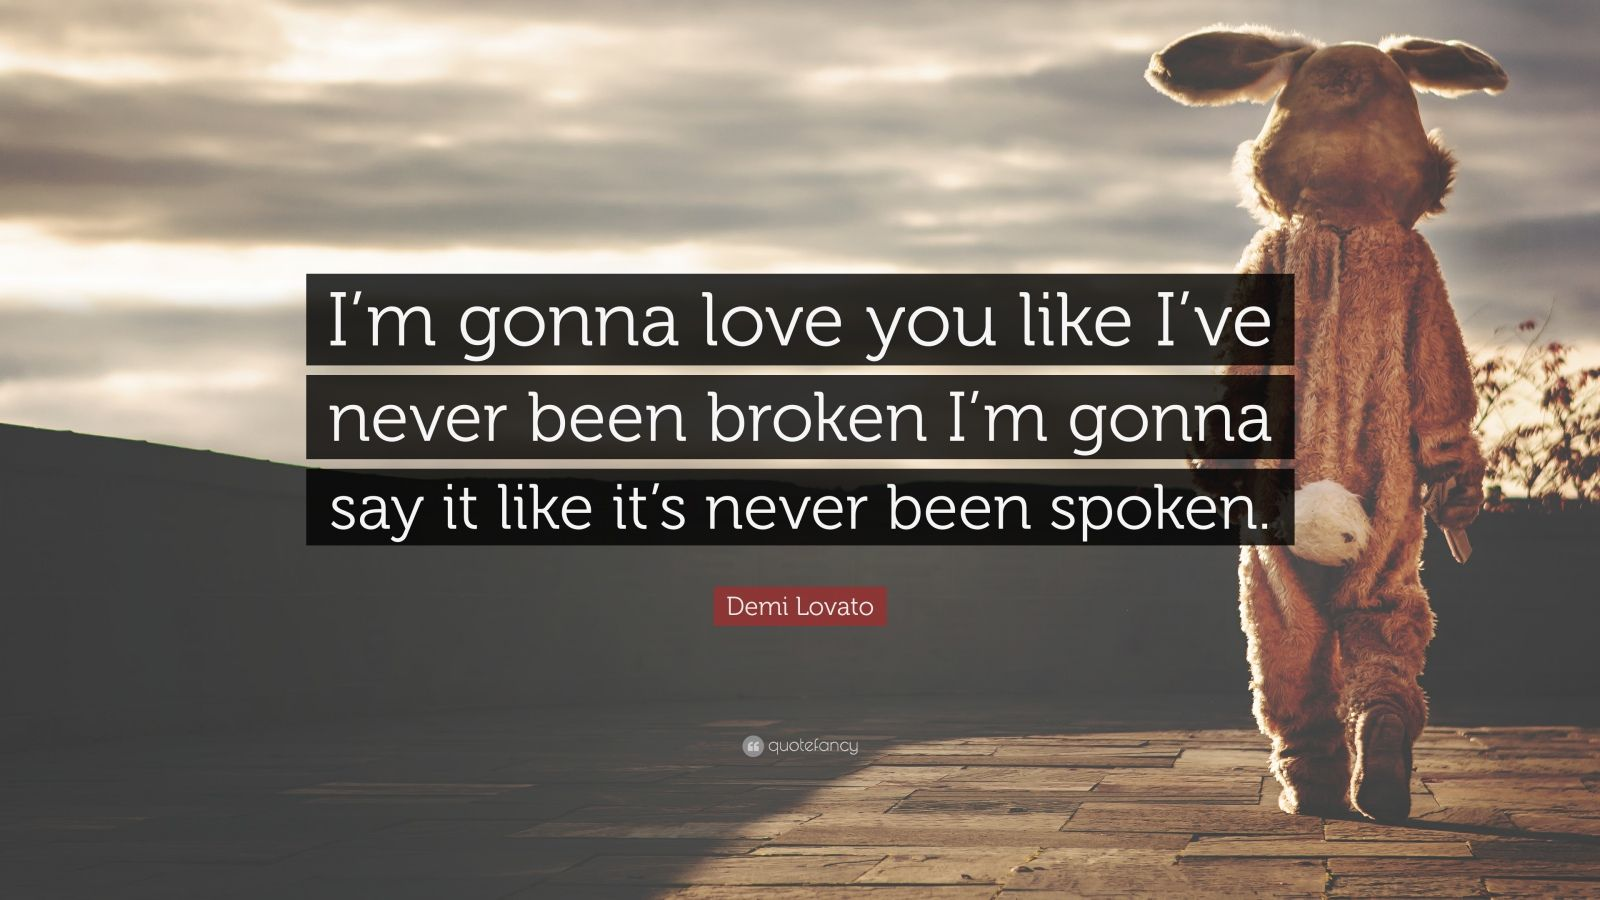 """Demi Lovato Quote: """"I'm gonna love you like I've never been broken I'm gonna say it like it's never been spoken."""""""